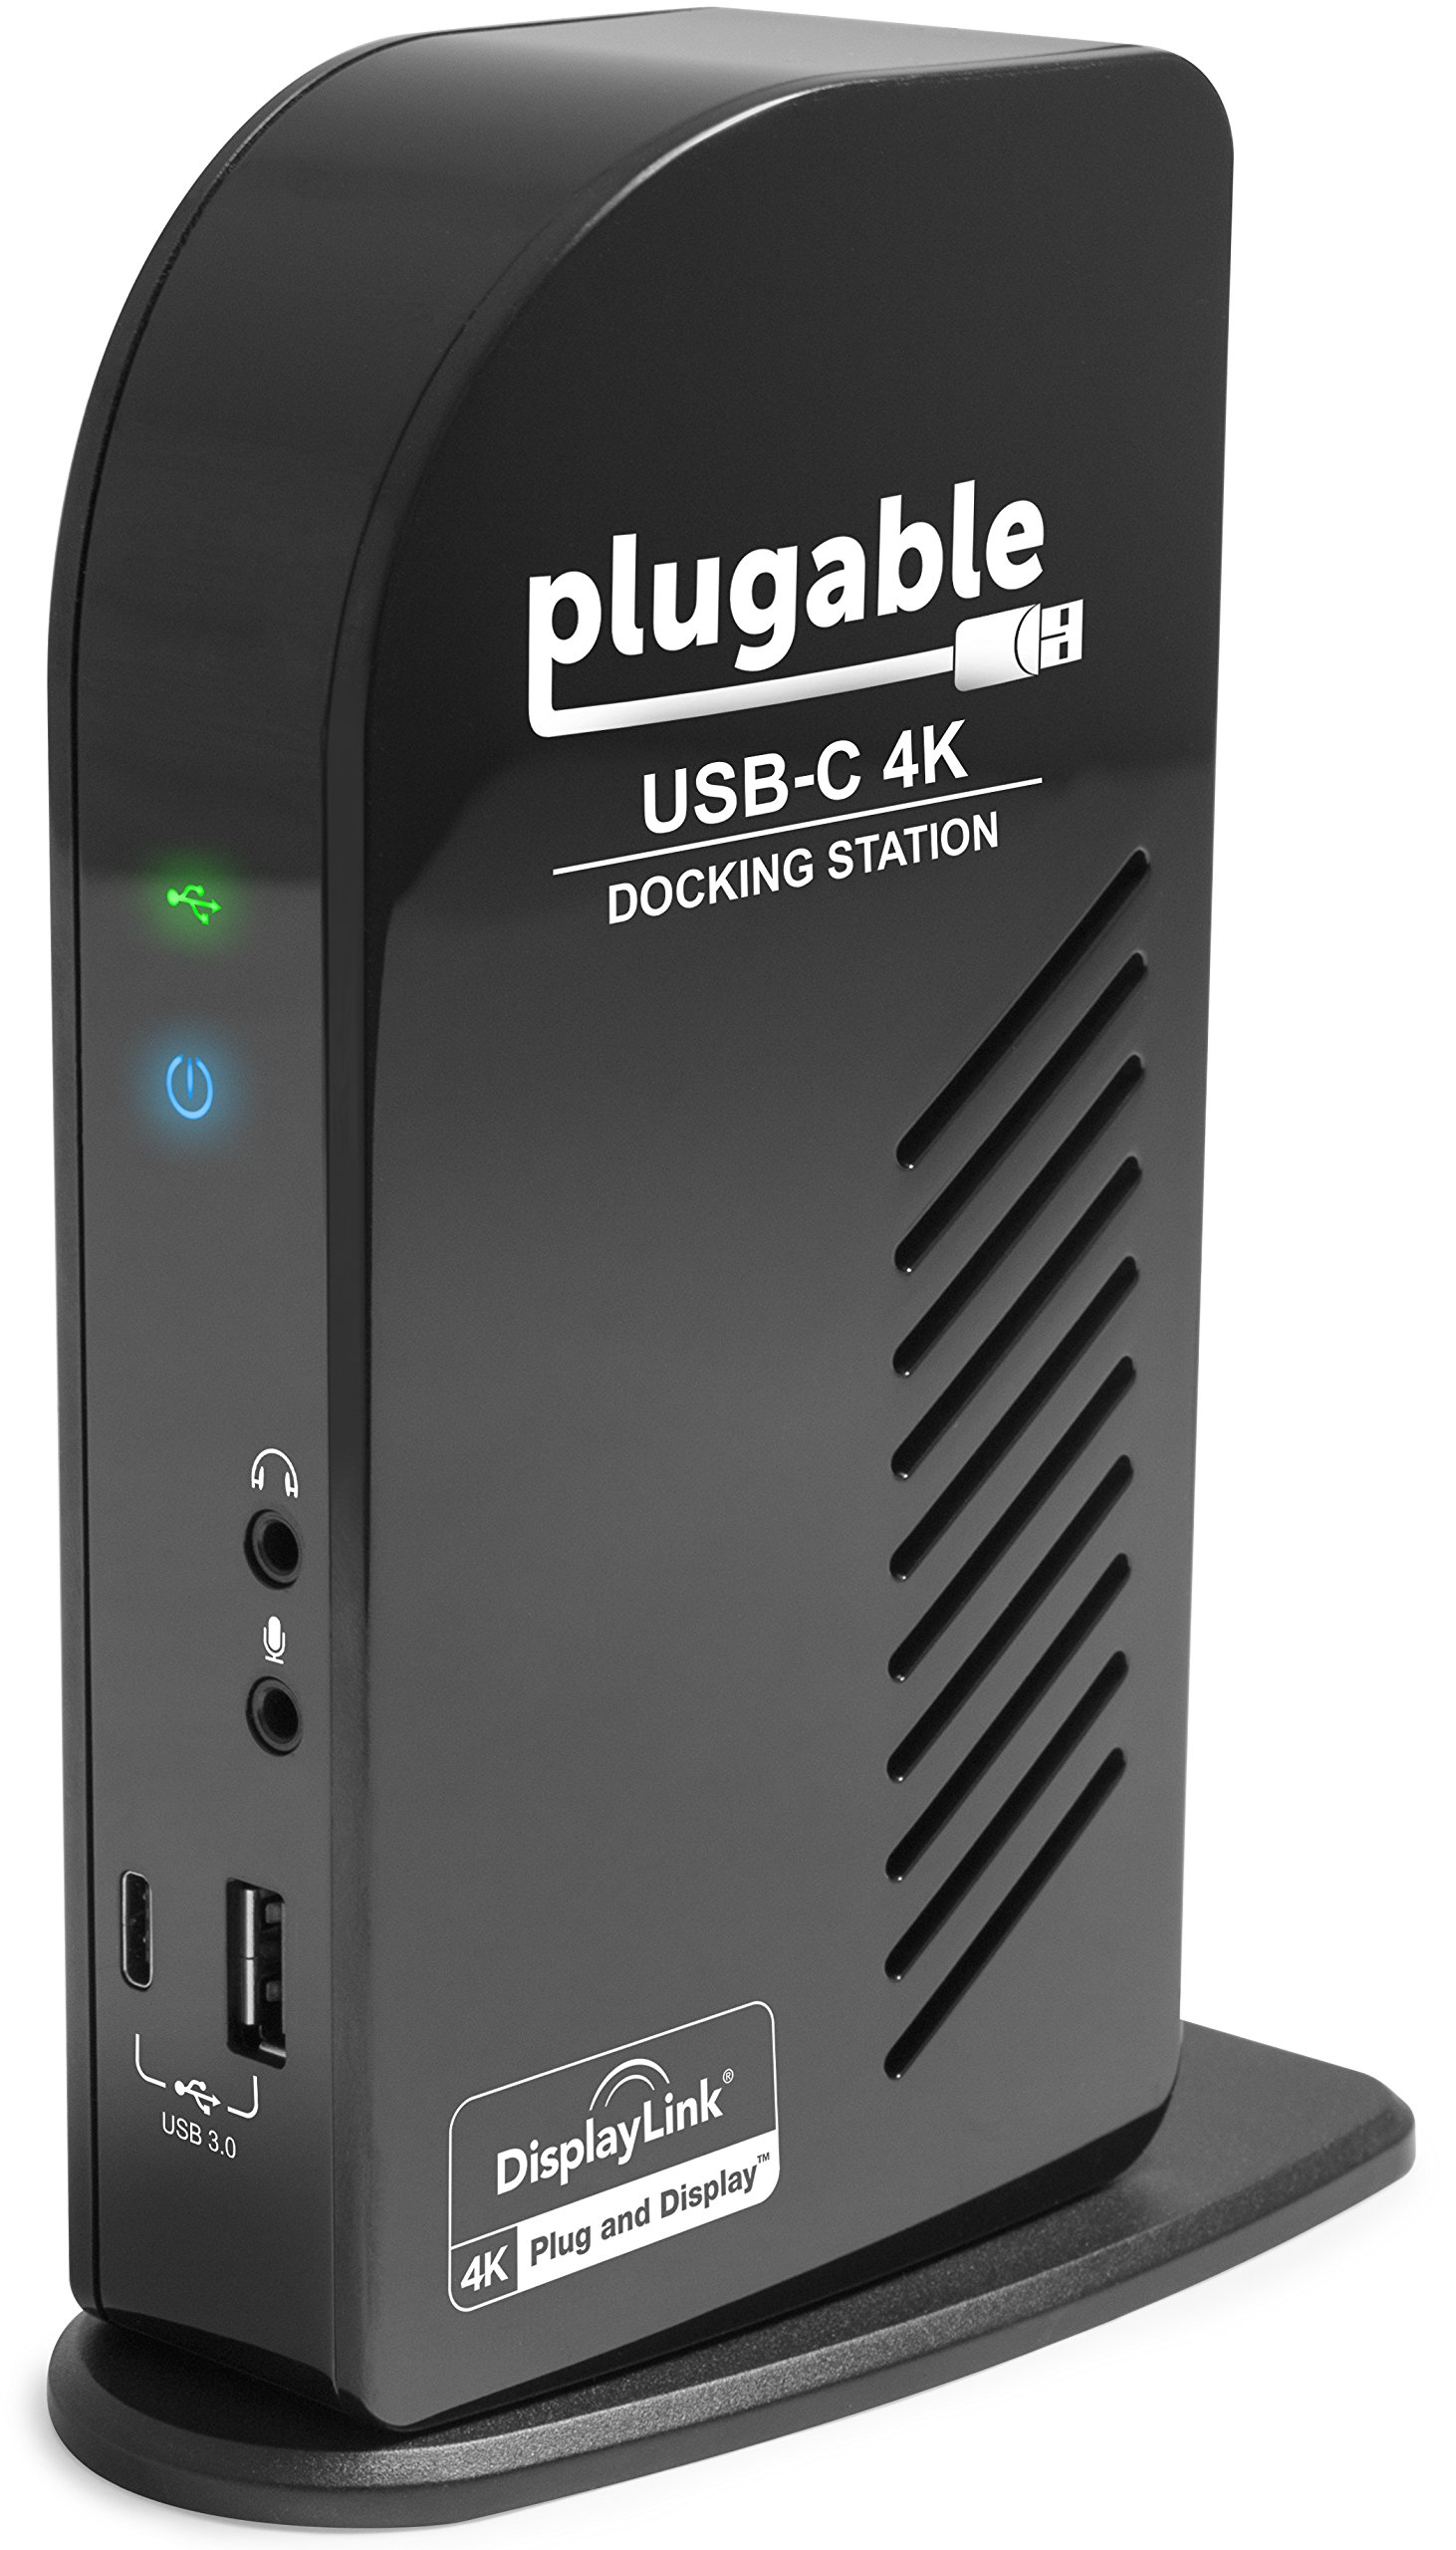 Plugable USB-C 4K Triple Display Docking Station with Charging Support for Specific Mac & Windows USB Type-C / Thunderbolt 3 Sysems (1x HDMI & 2x DisplayPort++ Outputs, 60W USB PD)